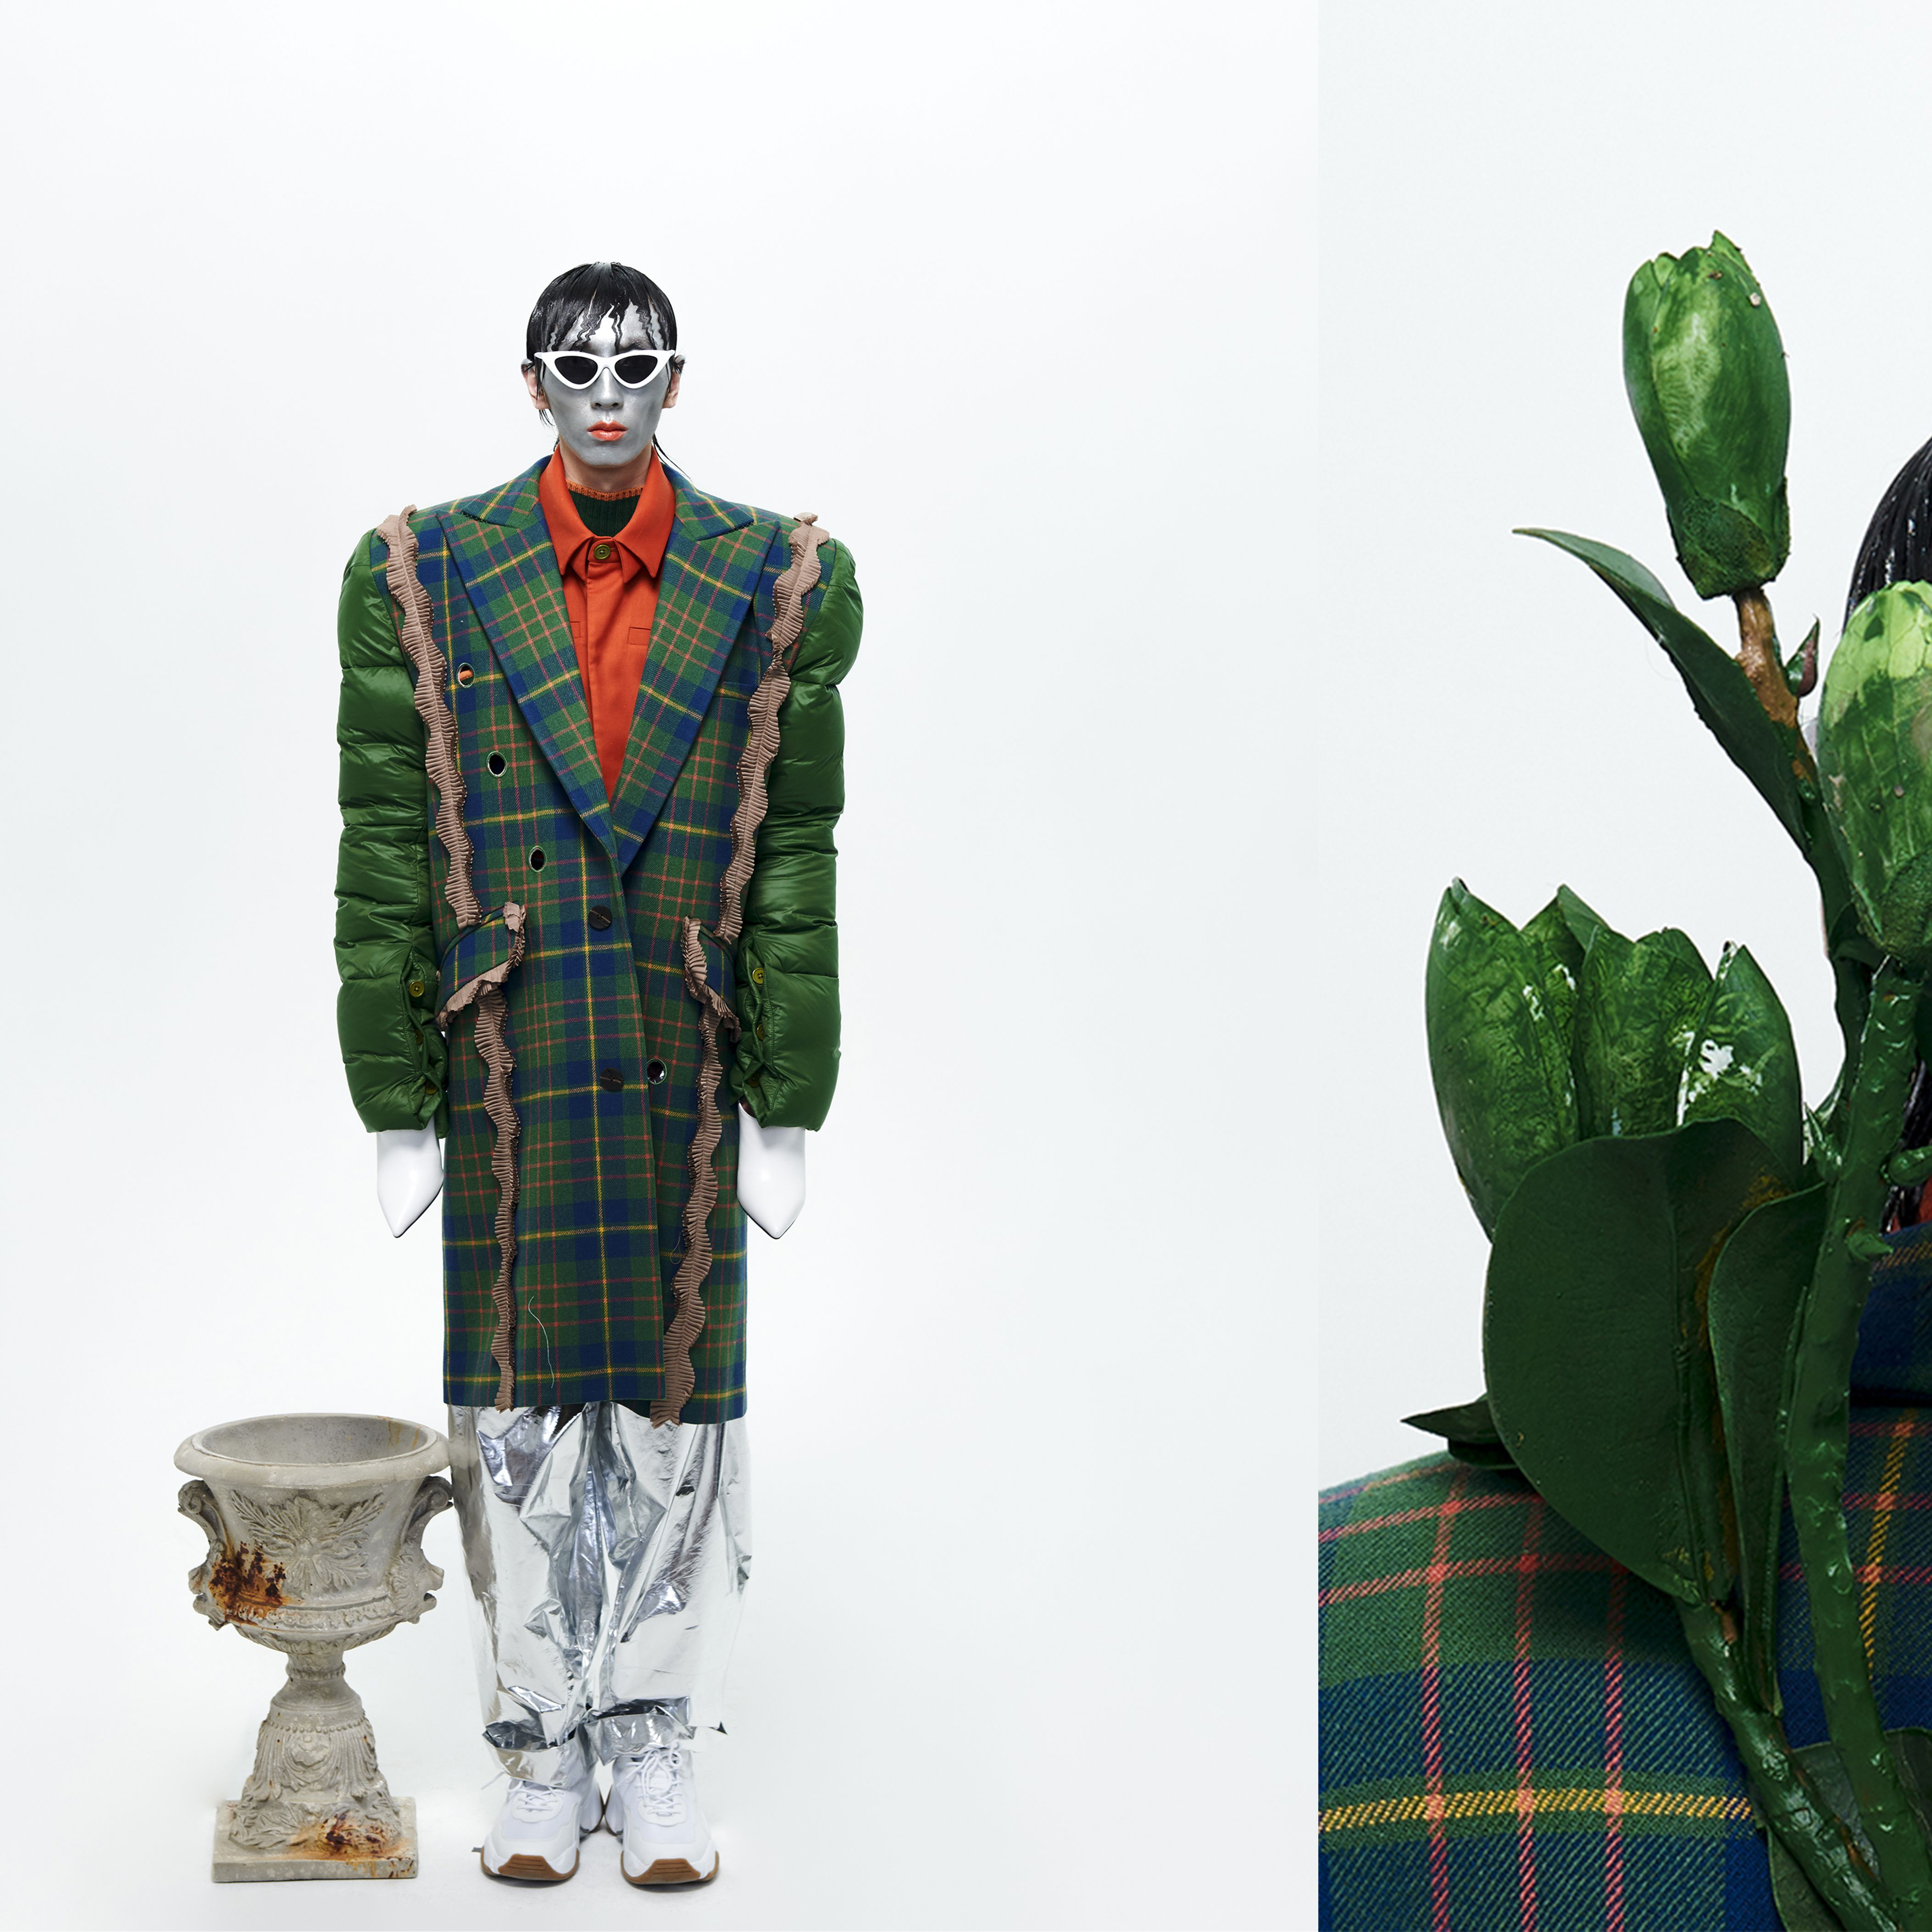 Male model in green tweed with emphasis on nature and plants.